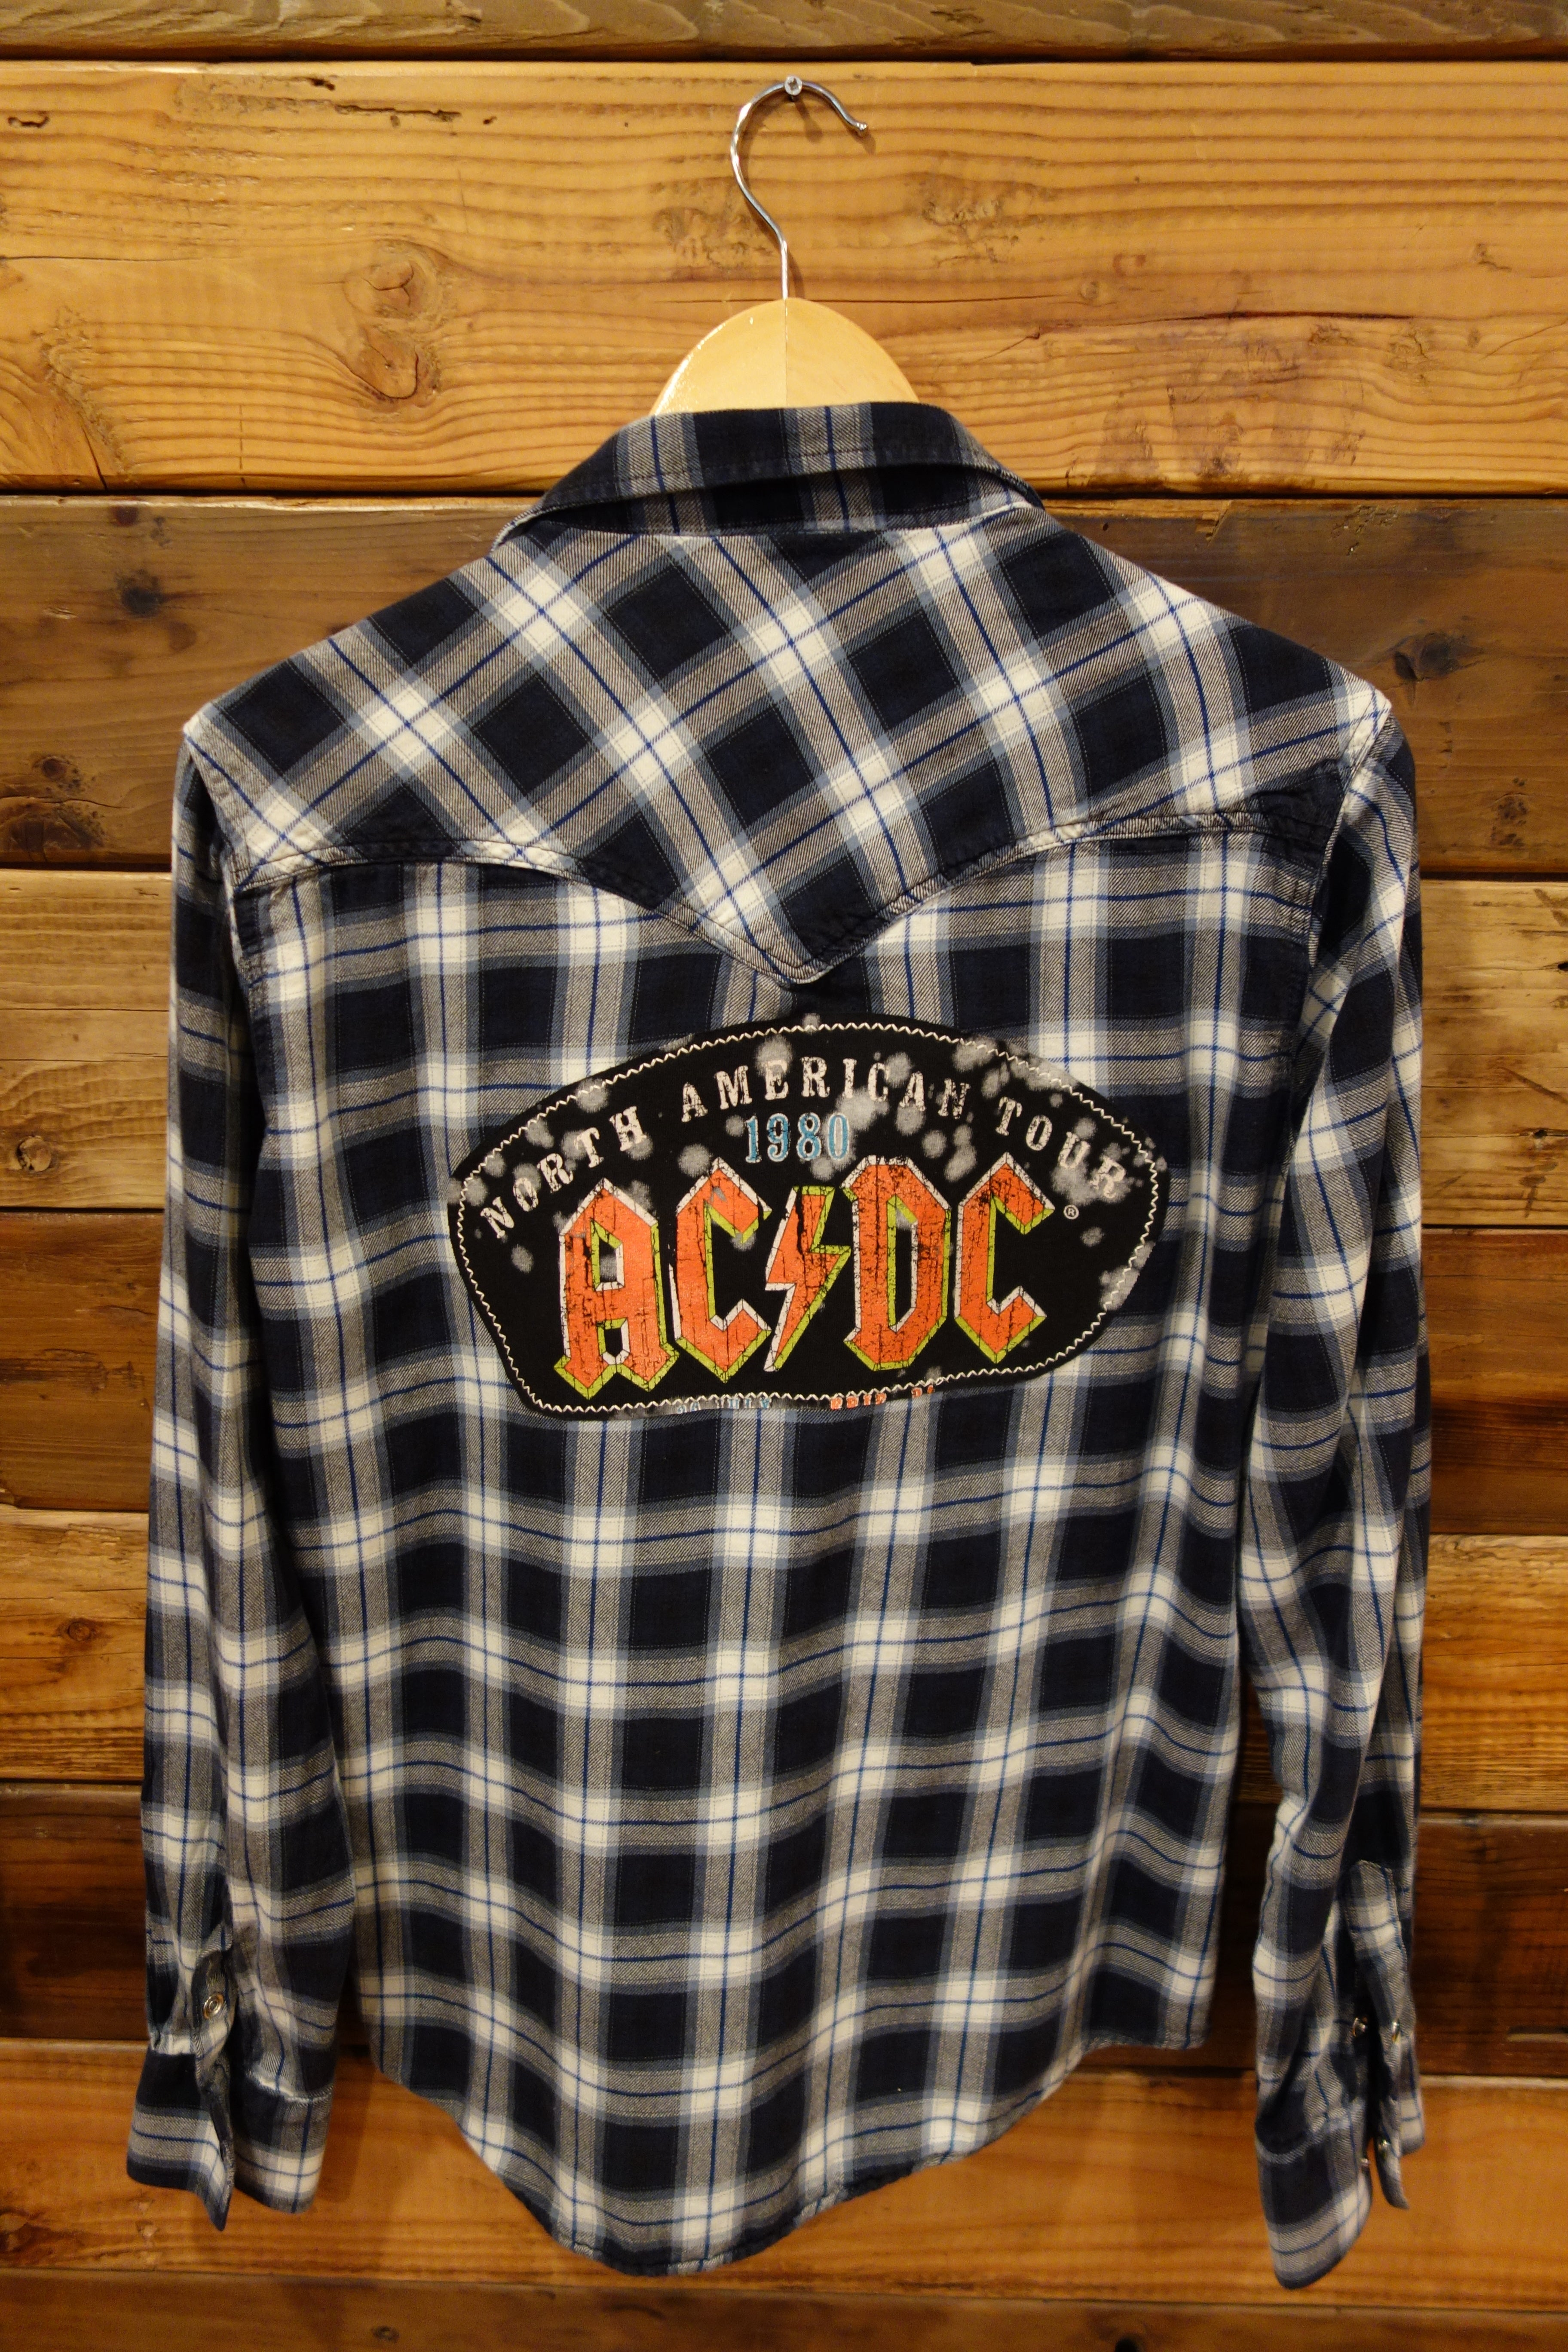 Christian Audigier flannel, one of a kind, AC?DC 1980 concert tee